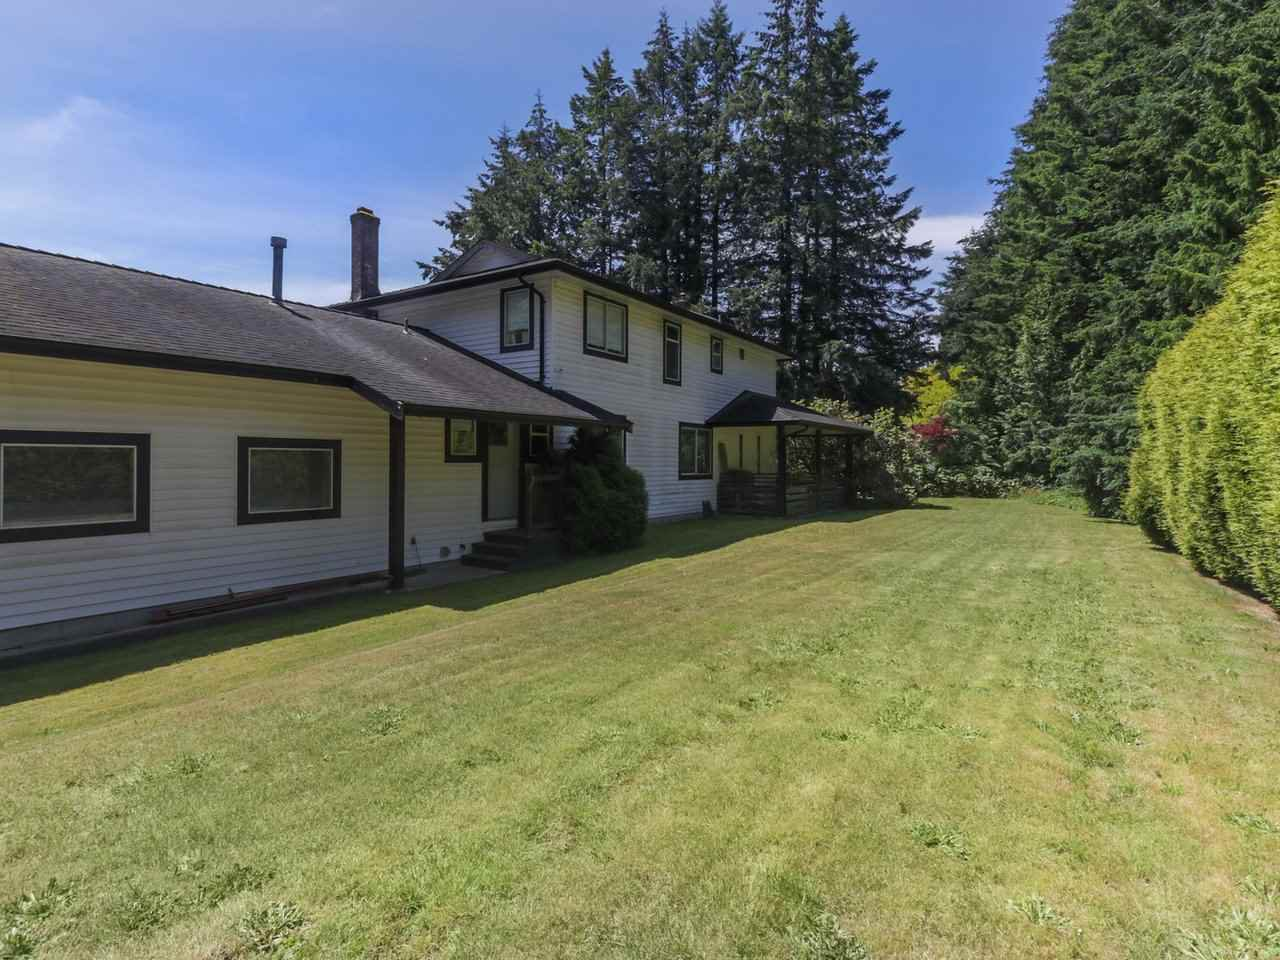 Photo 24: Photos: 13957 32 Avenue in Surrey: Elgin Chantrell House for sale (South Surrey White Rock)  : MLS®# R2466206